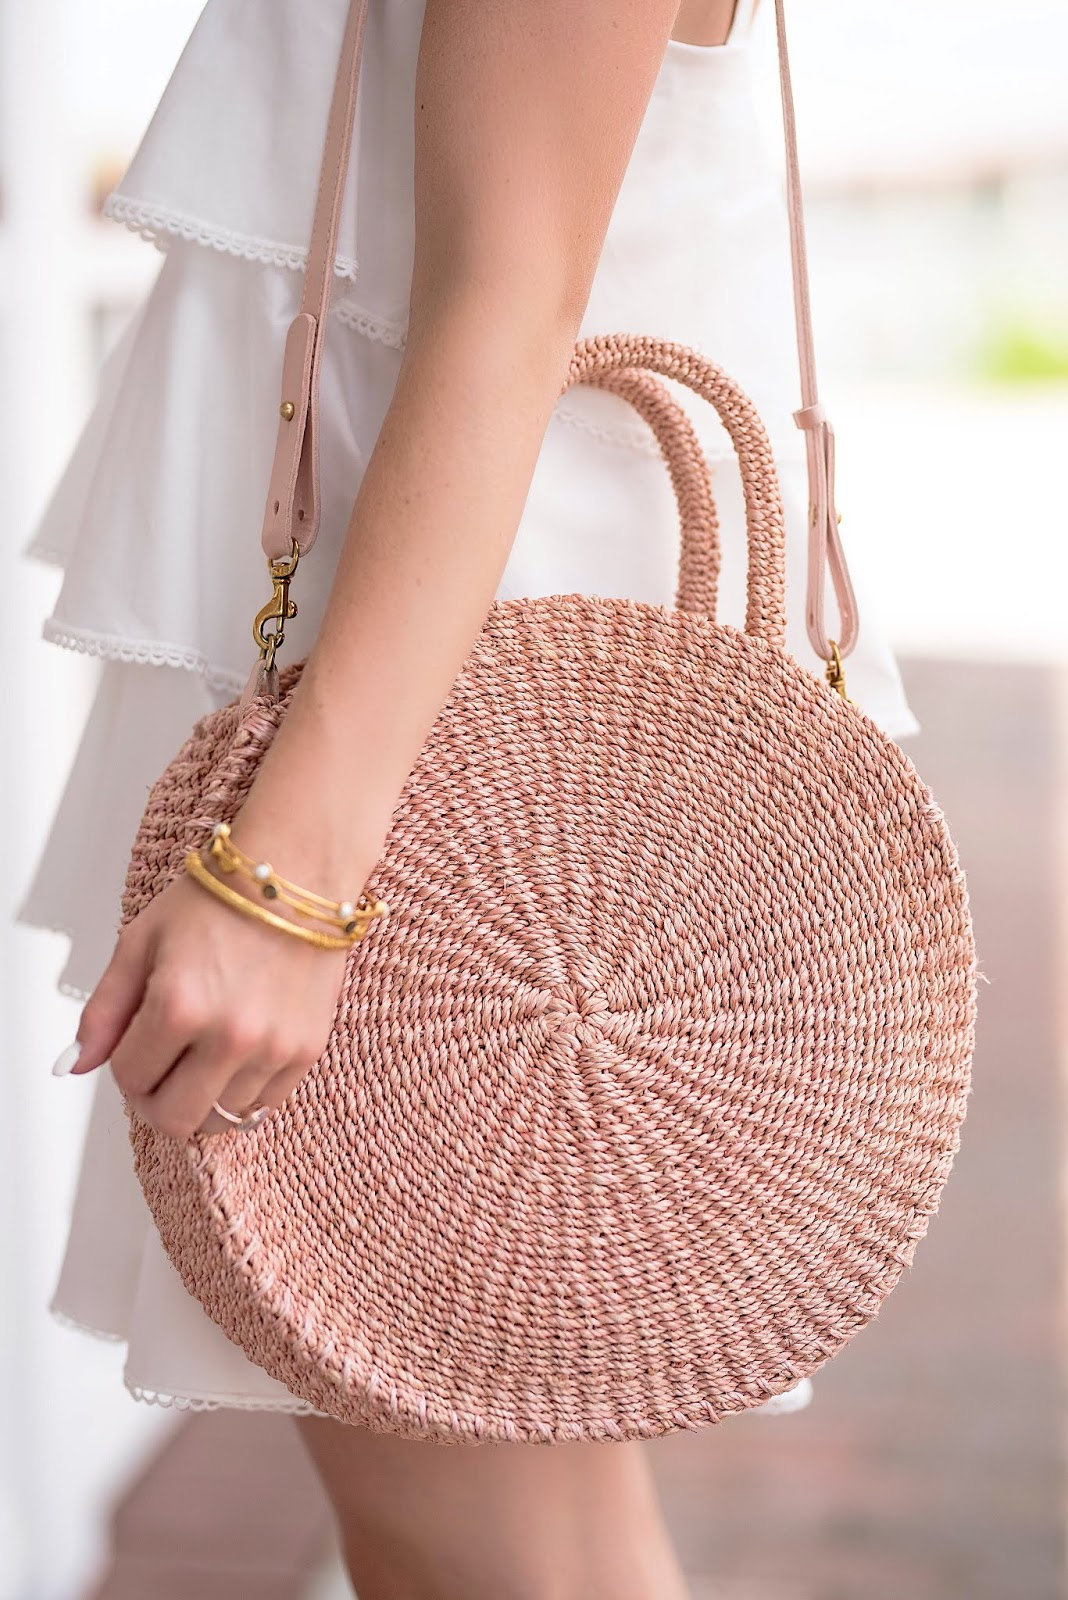 Clare V. Alice Bag in Blush- Something Delightful Blog